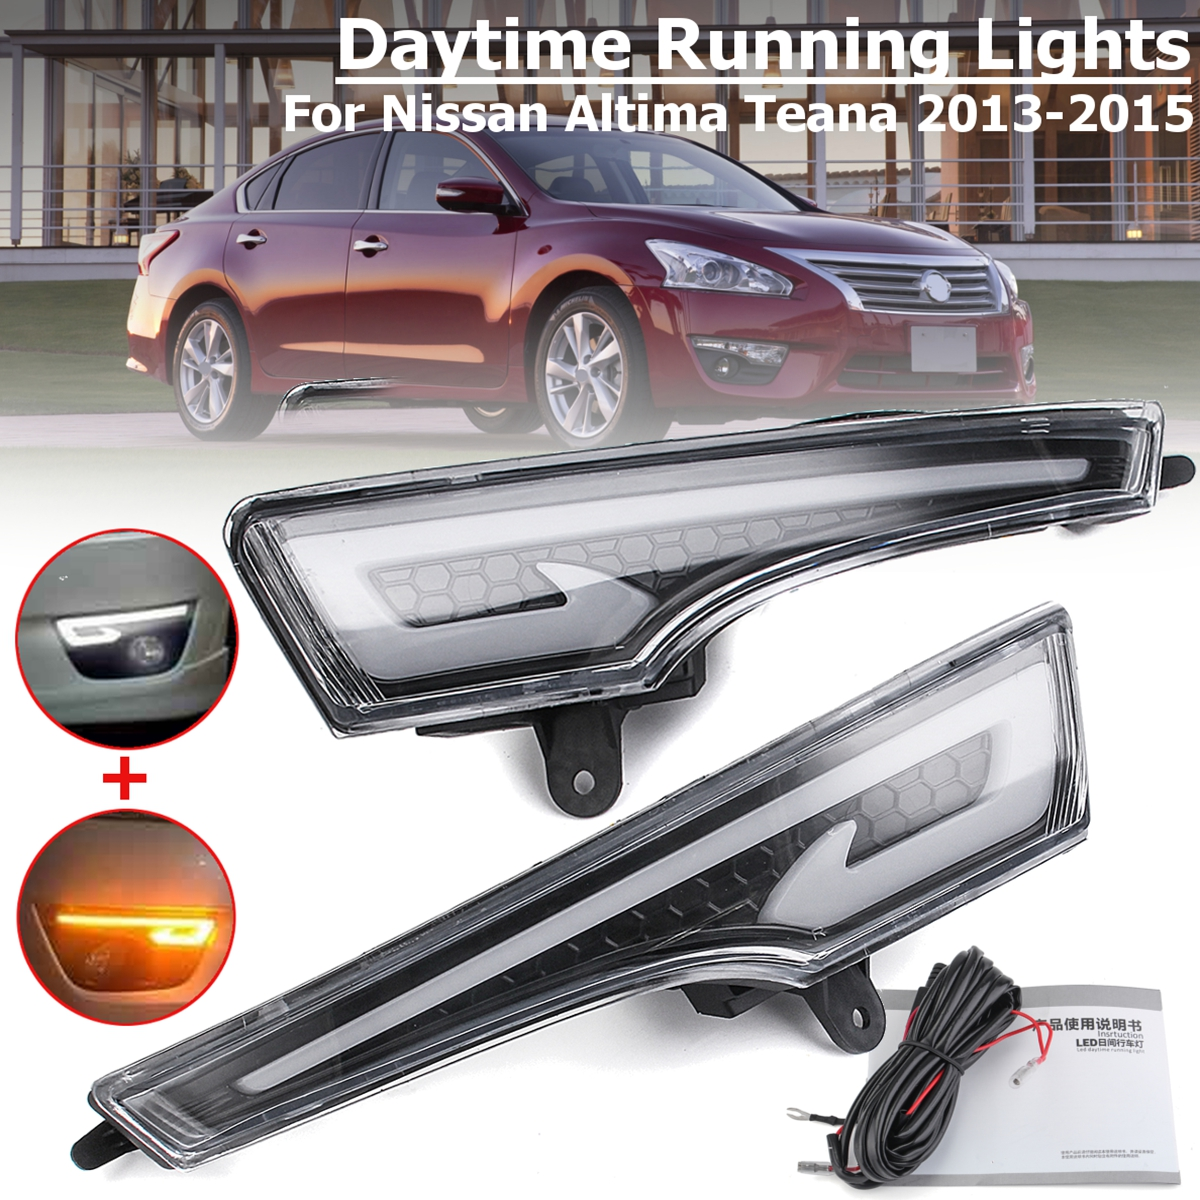 купить 1Pair LED DRL Daytime Running Lights Lamp Fog light cover for Nissan Altima Teana 2013 2014 2015